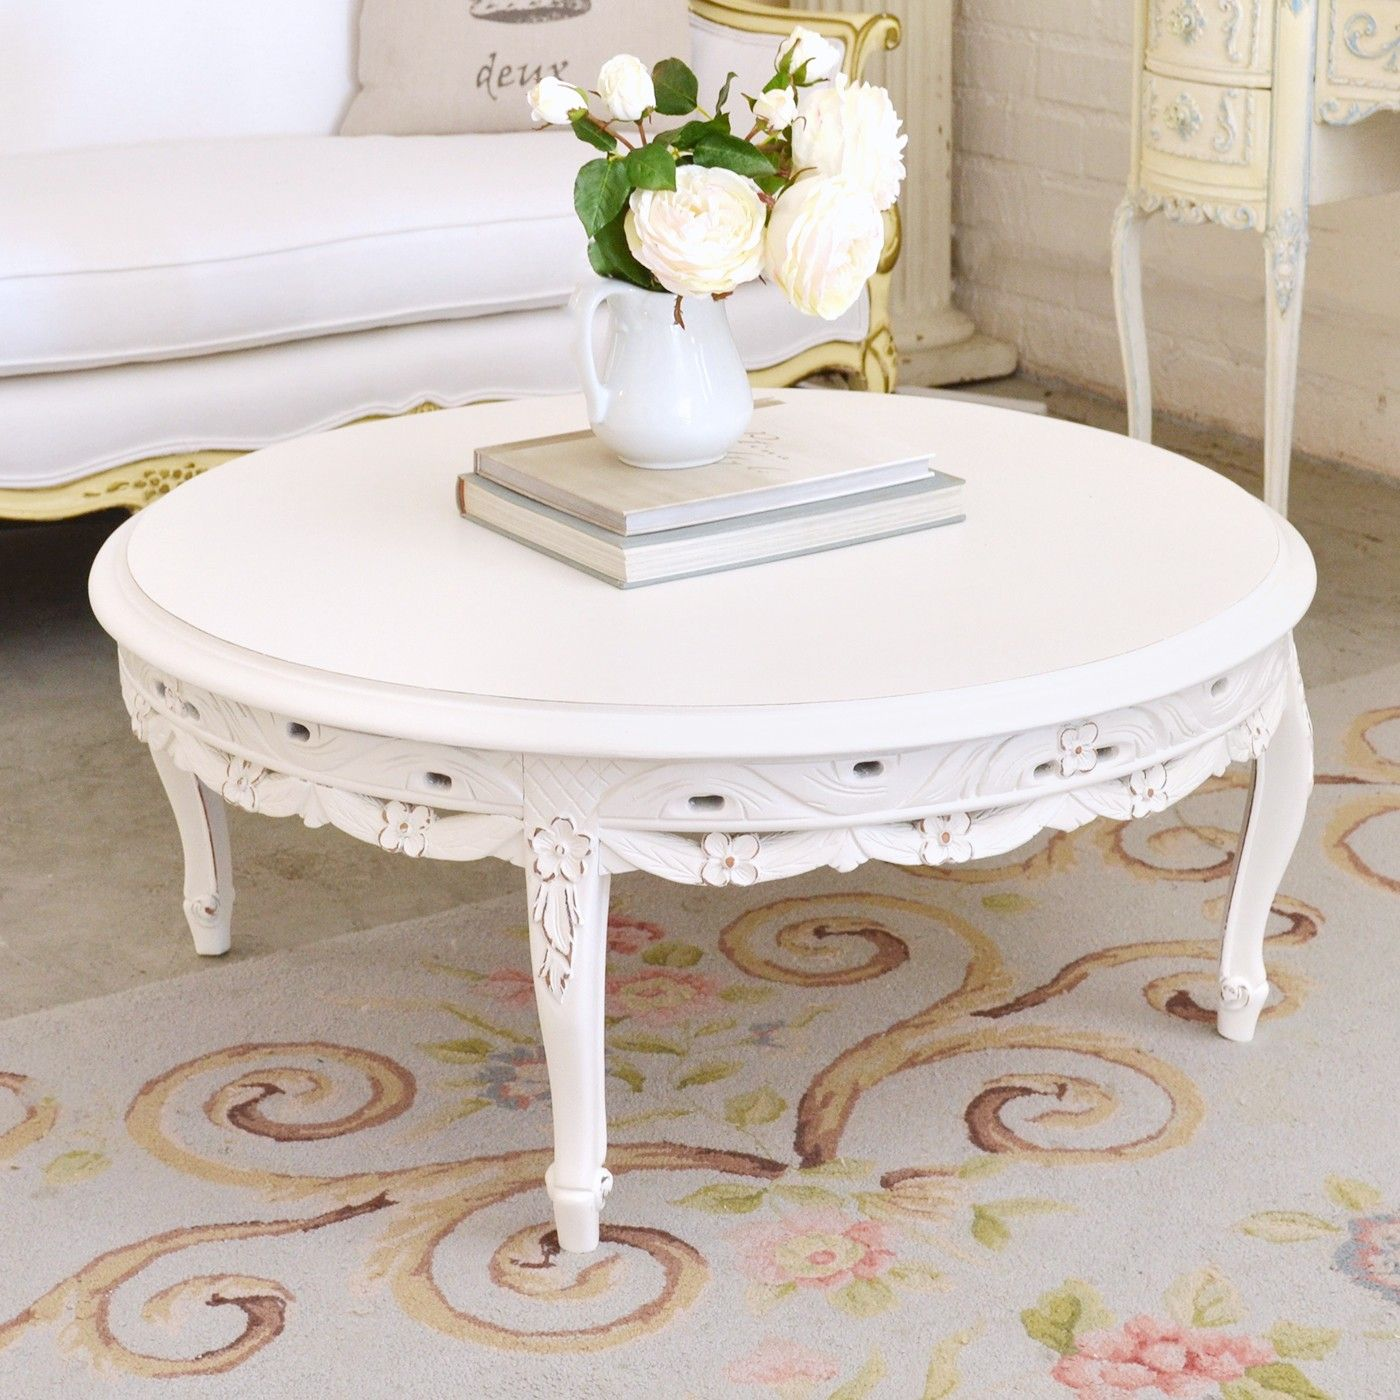 Lovely Round Coffee Table $595.00 #OOAK #thebellacottage #shabbychic. Round  Coffee TablesCountry StyleFrench ...